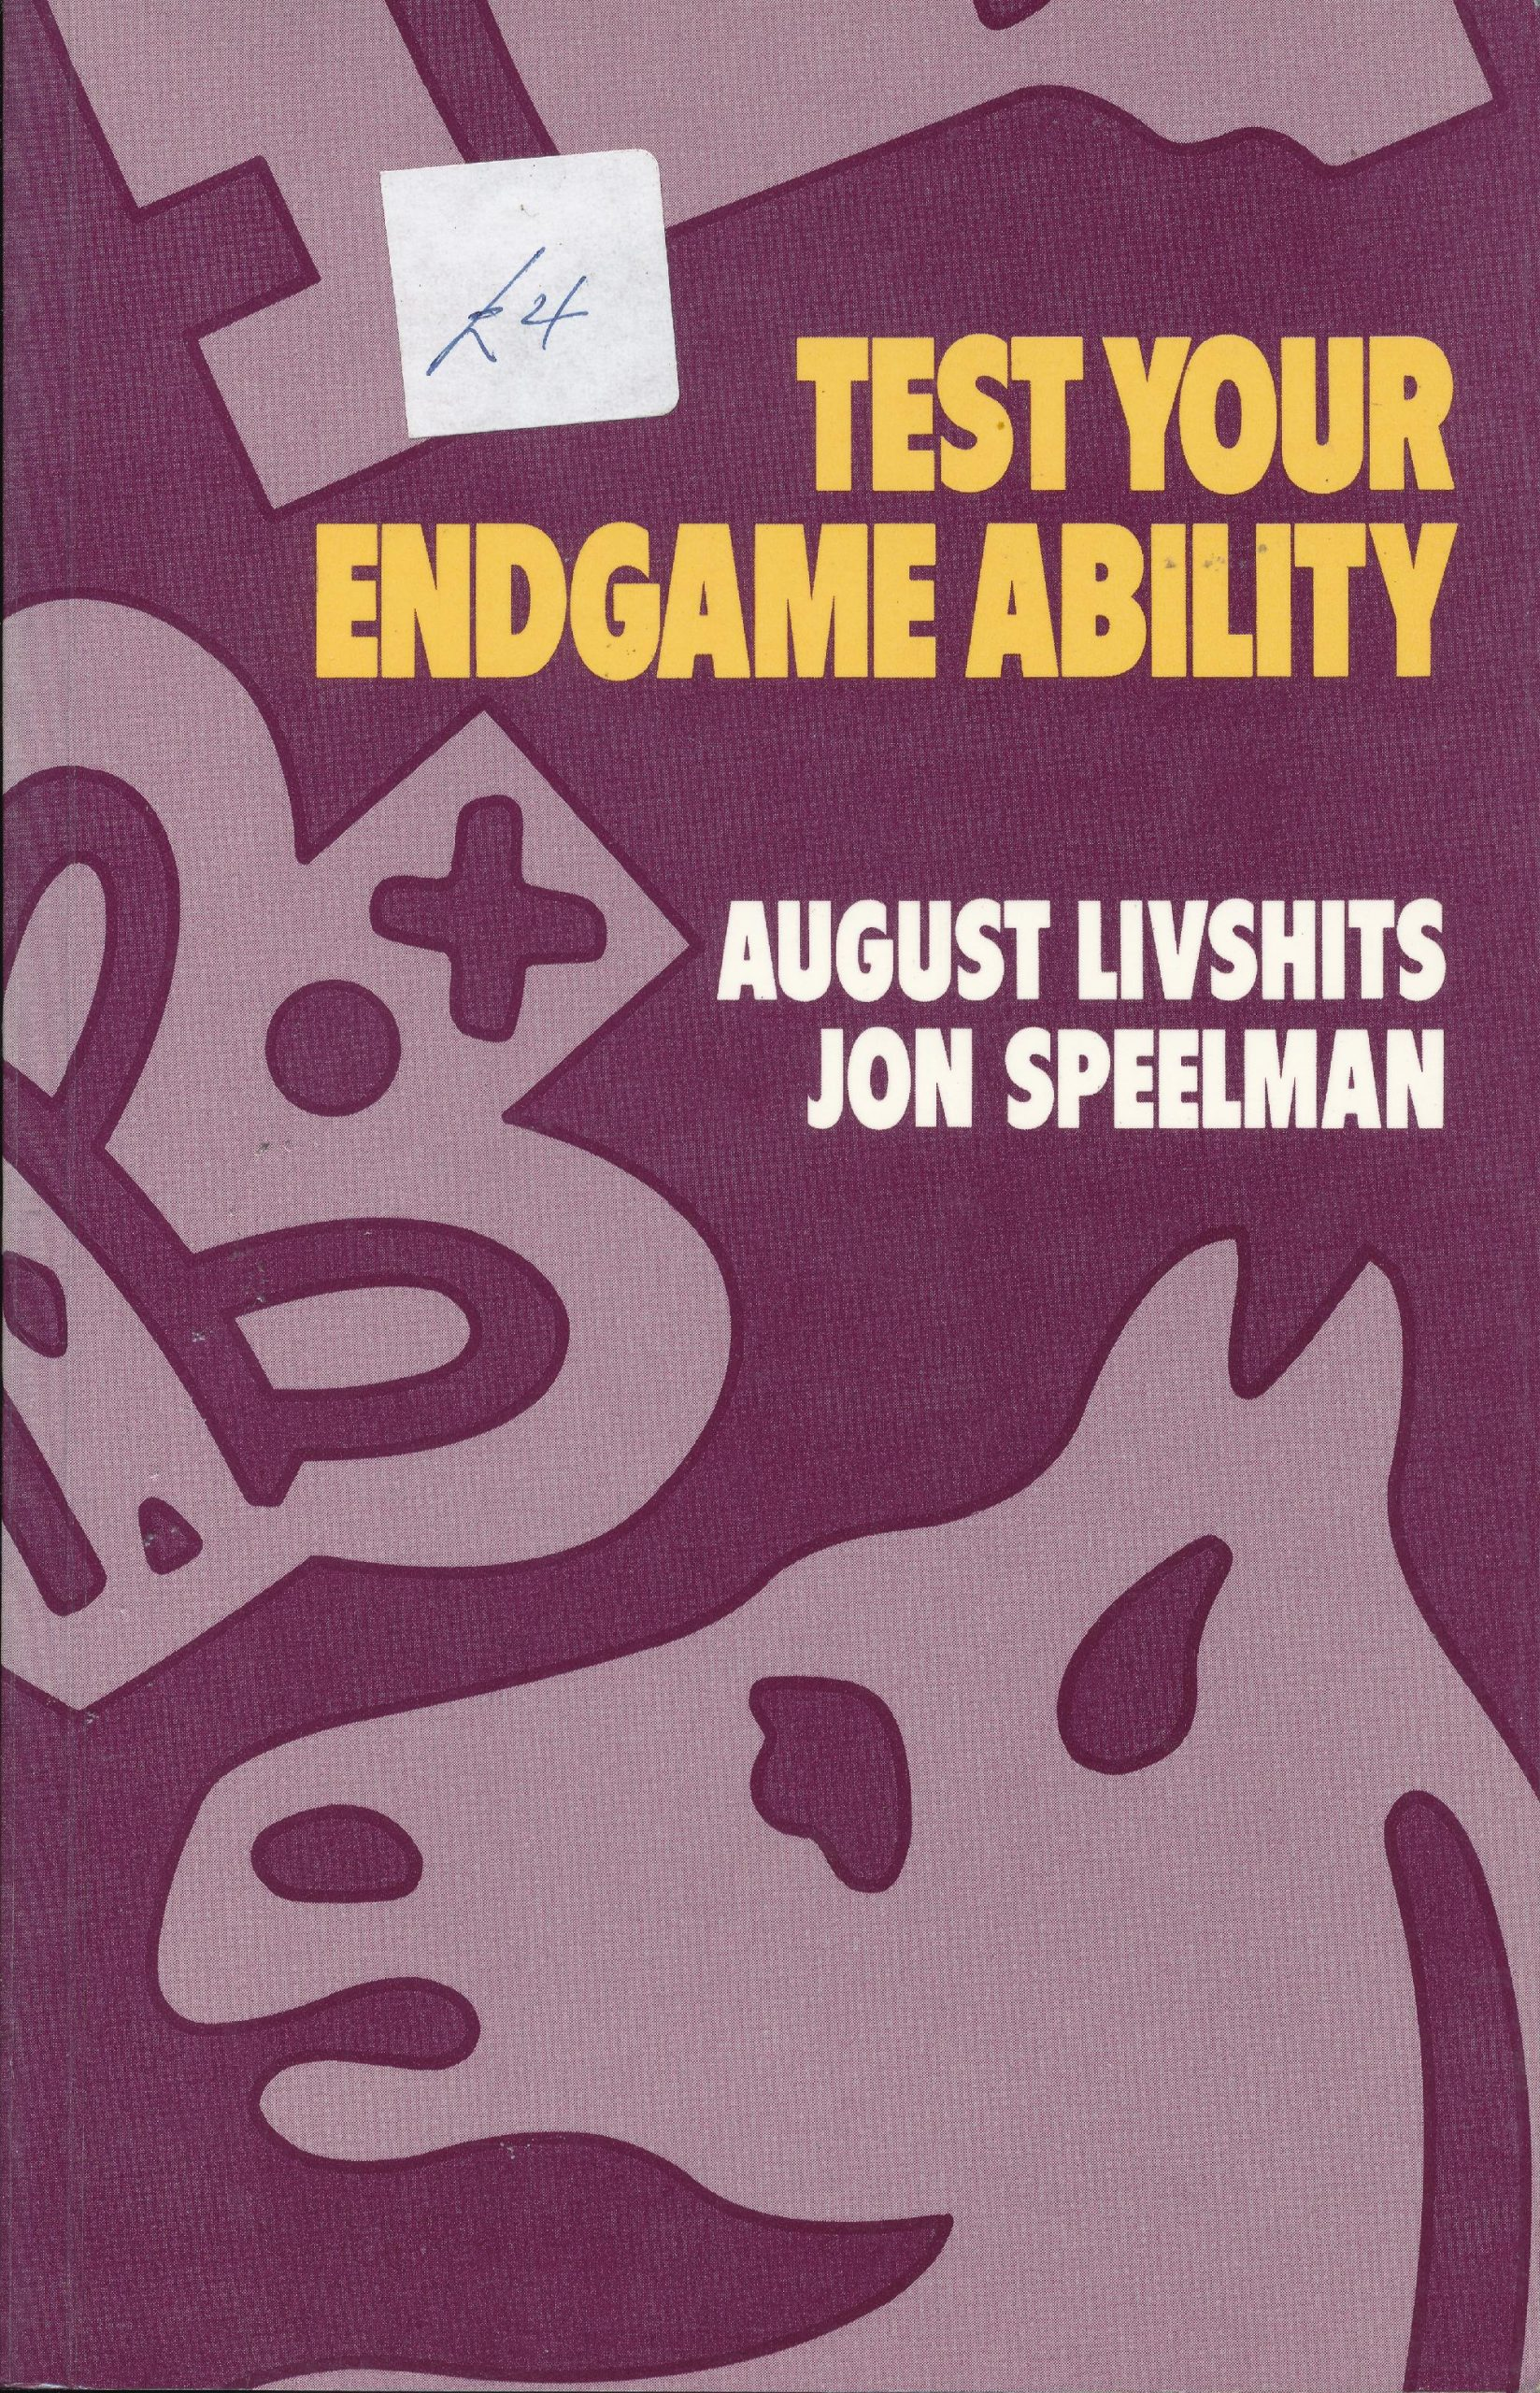 Speelman, Jon; Livshits, August (1988). Test Your Endgame Ability. BT Batsford (London, England). 201 pages. ISBN 0-7134-5567-5